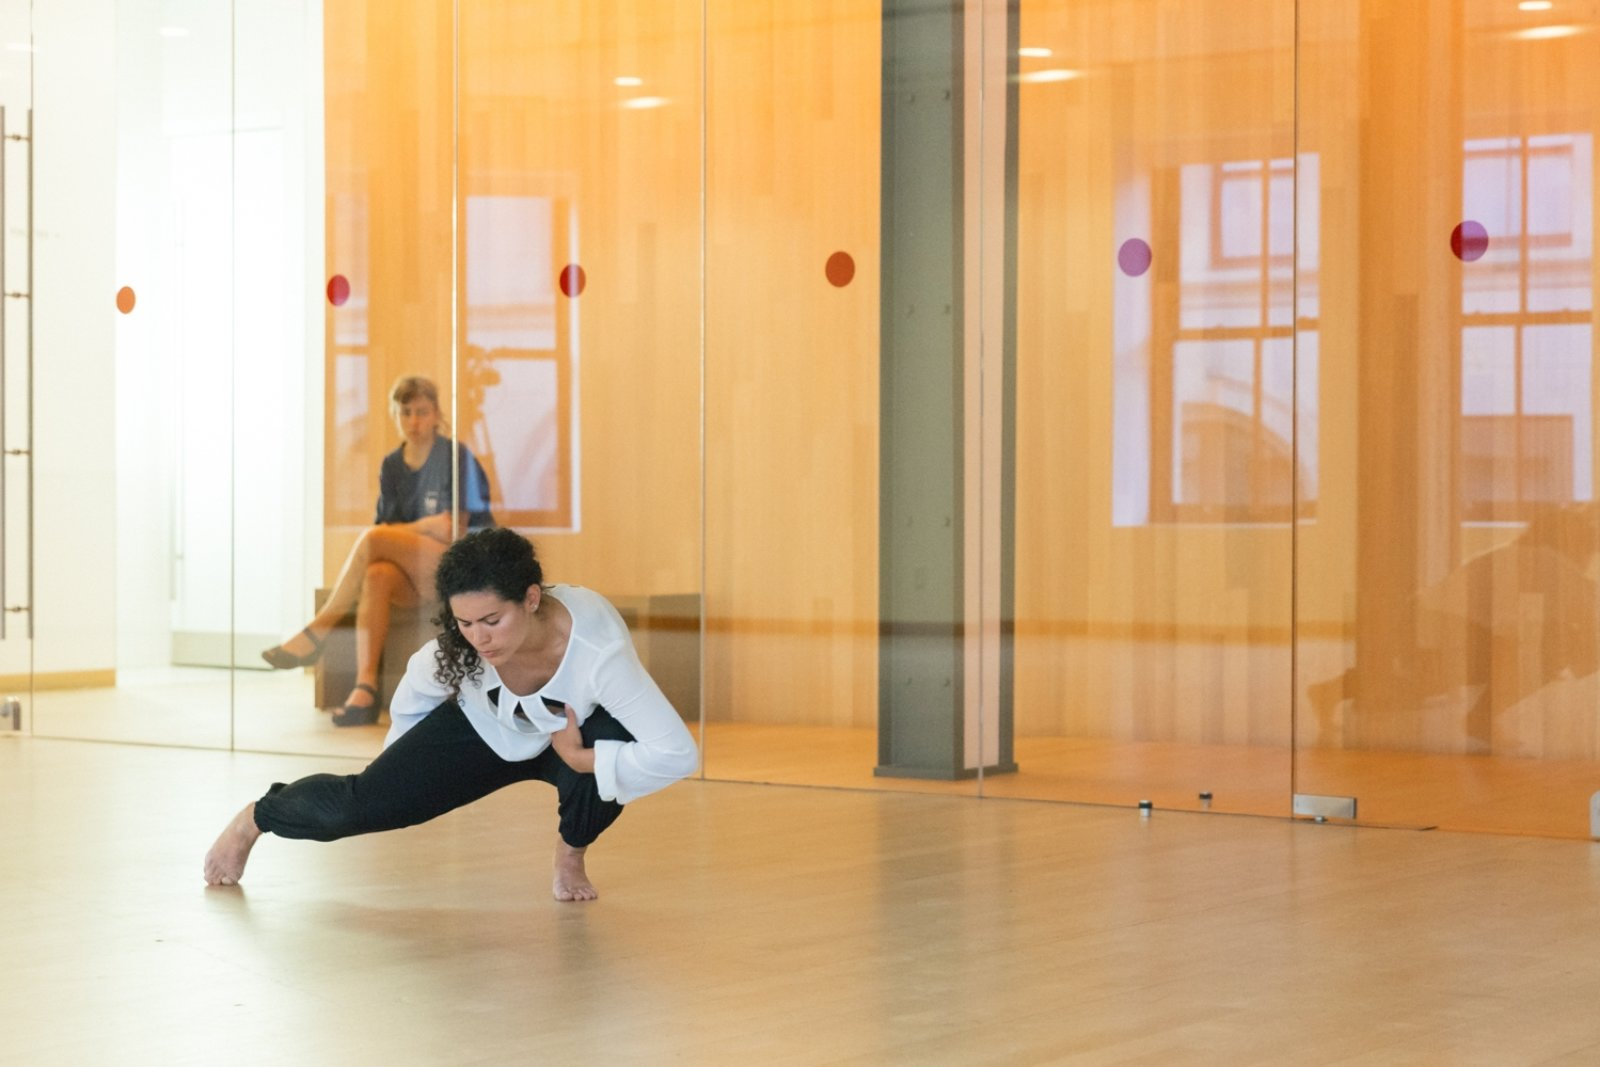 Tanya Lukin Linklater, A glossary of insistence, 2016, text performance with 2 dancers and video, dimensions variable. Performance documentation, From Away, Centre Phi, DHC/Art, Montreal, Canada, 2016